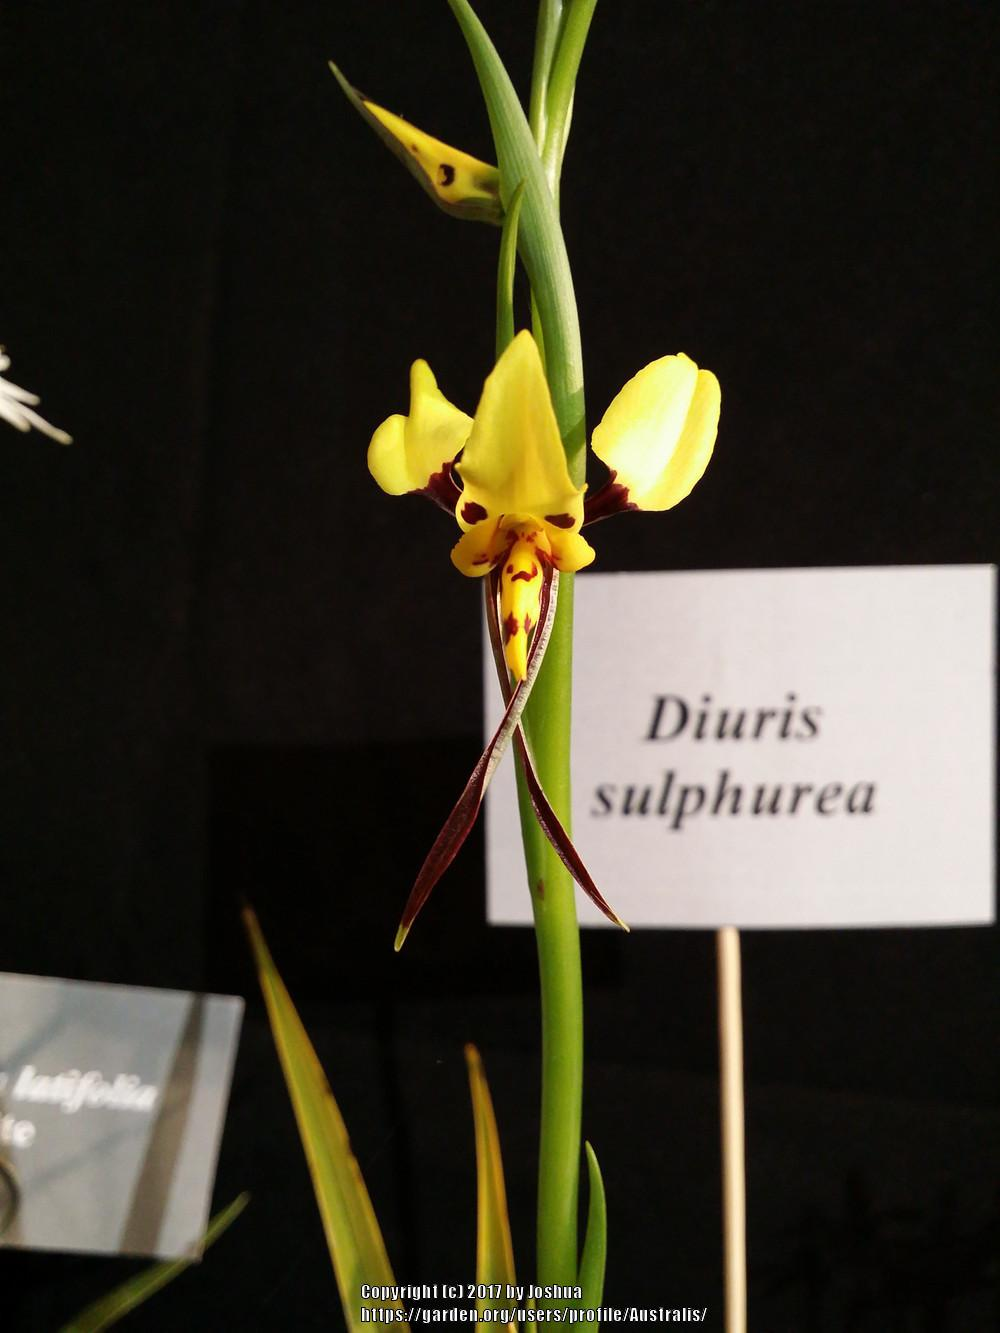 Photo of Tiger Orchid (Diuris sulphurea) uploaded by Australis